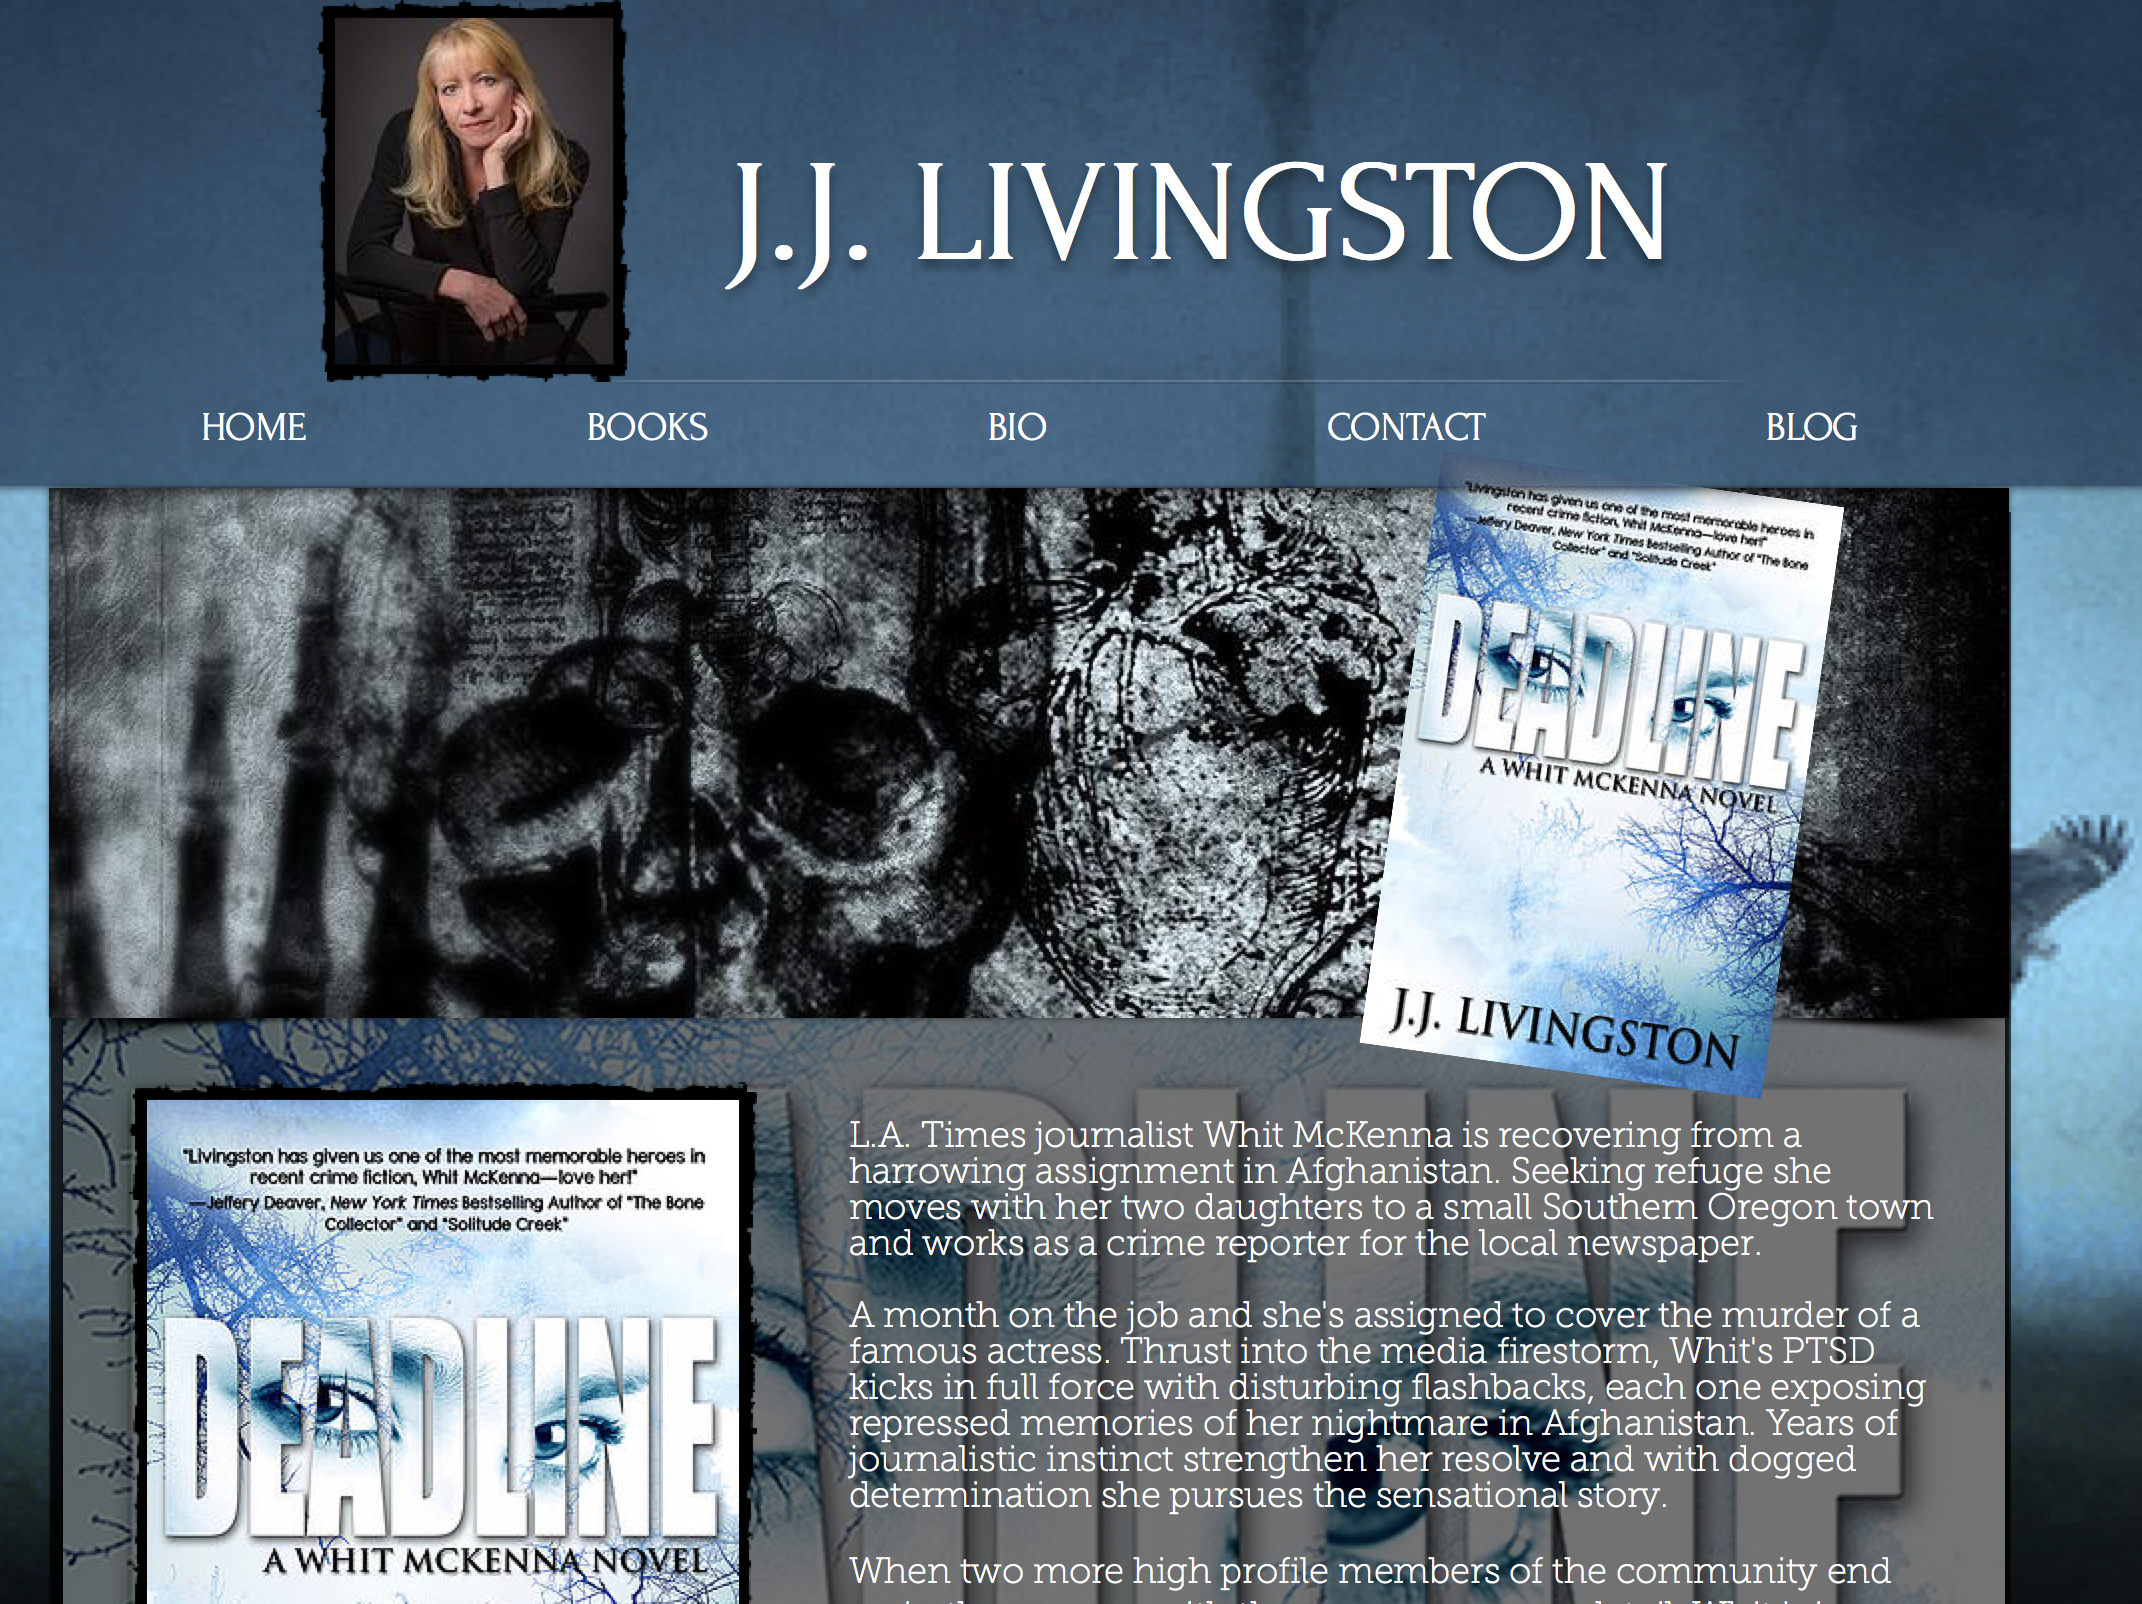 """I share this particular screenshot because it includes the reshoot of my error. J.J. came to me for an image that would serve her as a realtor as well as an author. The intrigue of a murder-mystery writer does not look great on a reator business card, and visa versa.  Because I did not speak up, I had to reshoot to achieve this more suitable image of her """"author look"""". It serves as my reminder to speak up. I could not have been more grateful that JJ returned to me confident of achieving both goals. (in two separate images of course) And she's getting great reviews on her new release of """"Deadline"""". Click the image to see for yourself!.."""